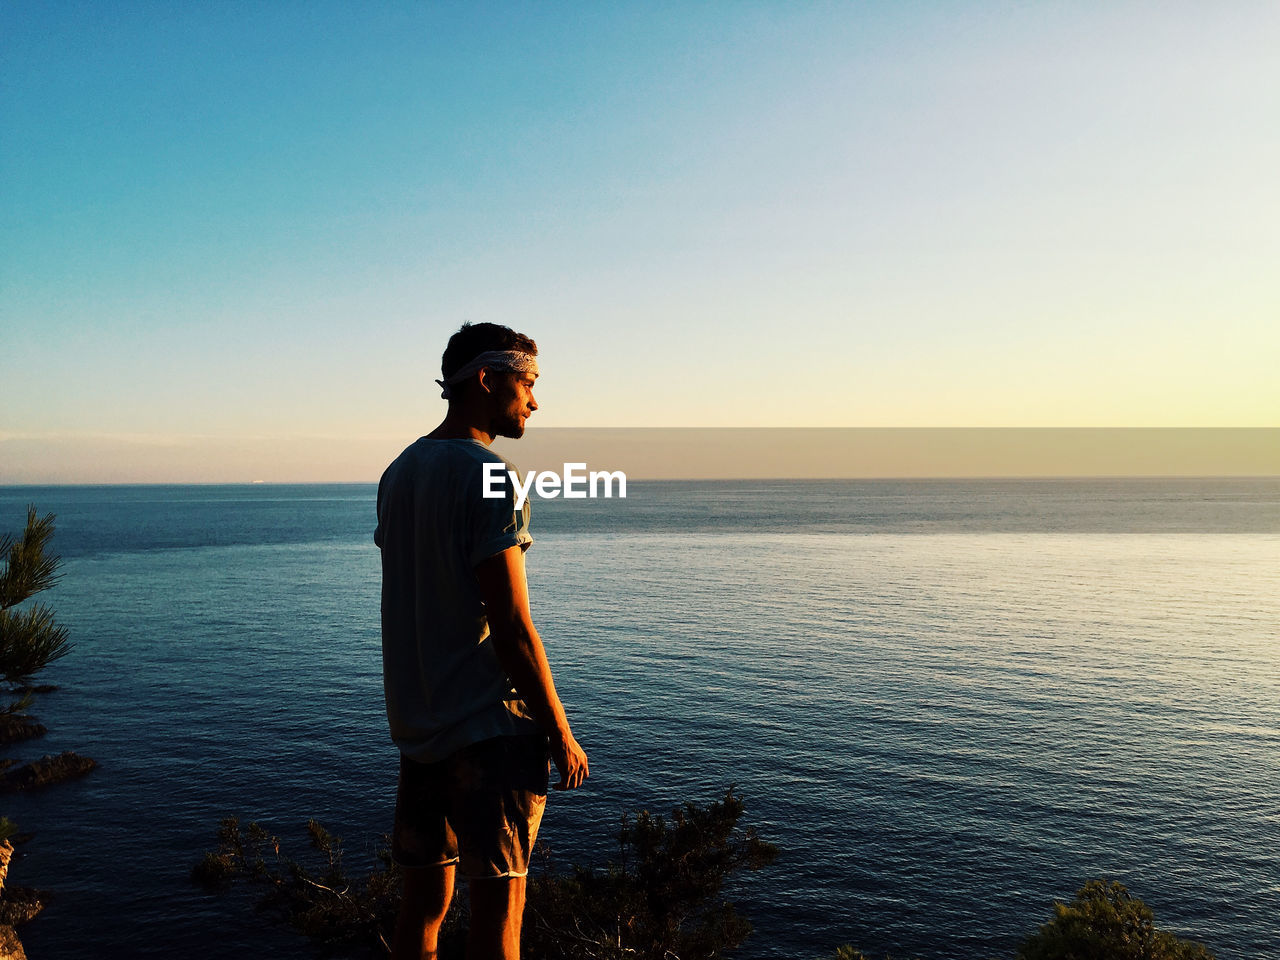 sky, sea, water, scenics - nature, beauty in nature, one person, lifestyles, standing, real people, sunset, leisure activity, tranquility, young adult, three quarter length, tranquil scene, non-urban scene, young men, casual clothing, copy space, horizon over water, outdoors, looking at view